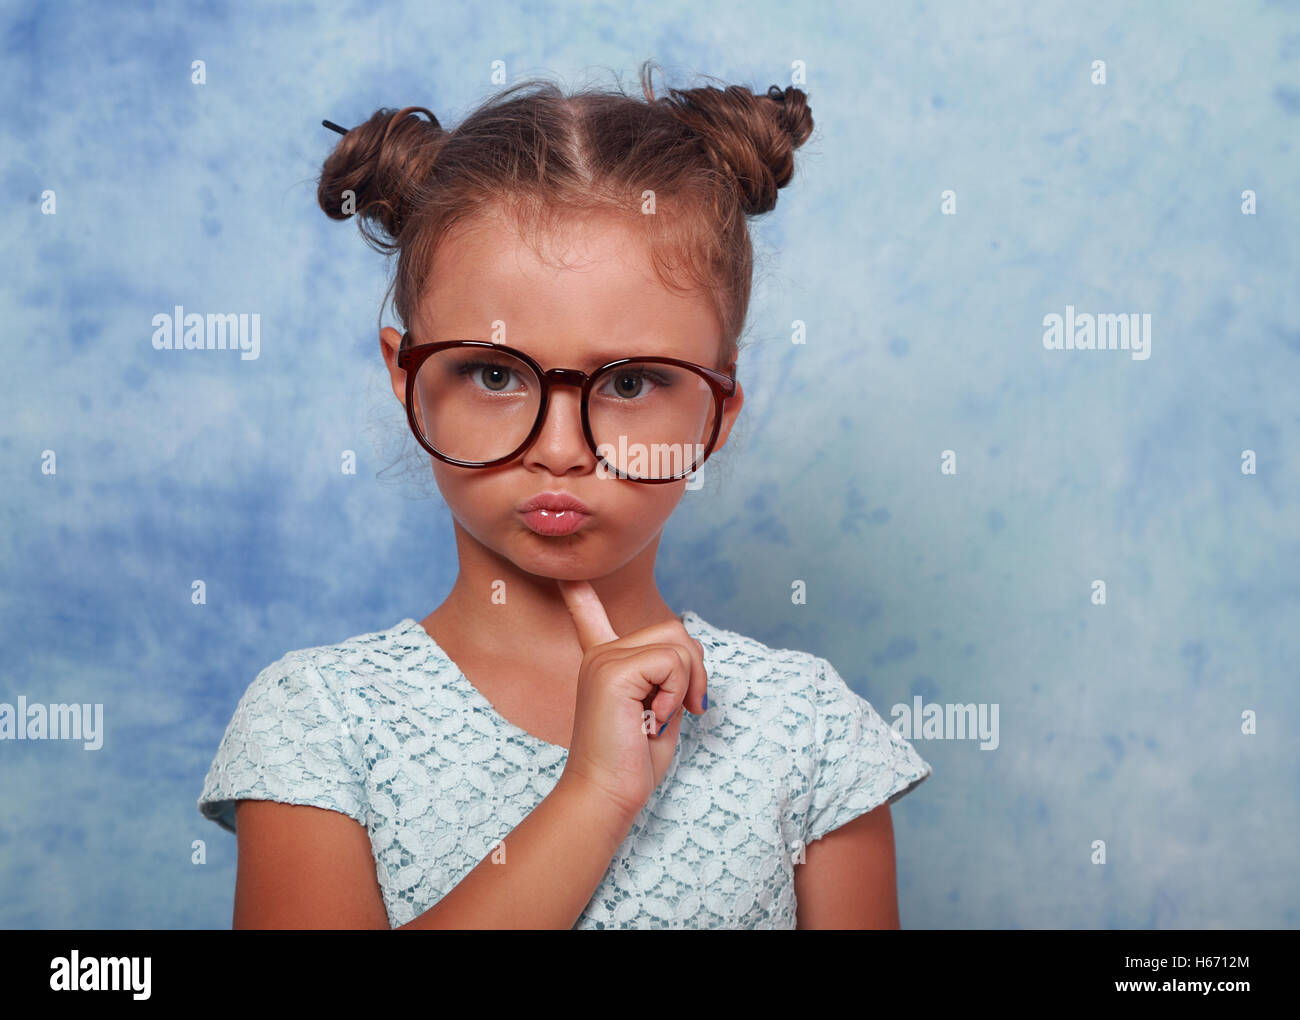 Serious angry kid girl with modern hair style in fashion glasses looking with finger under face on blue background - Stock Image